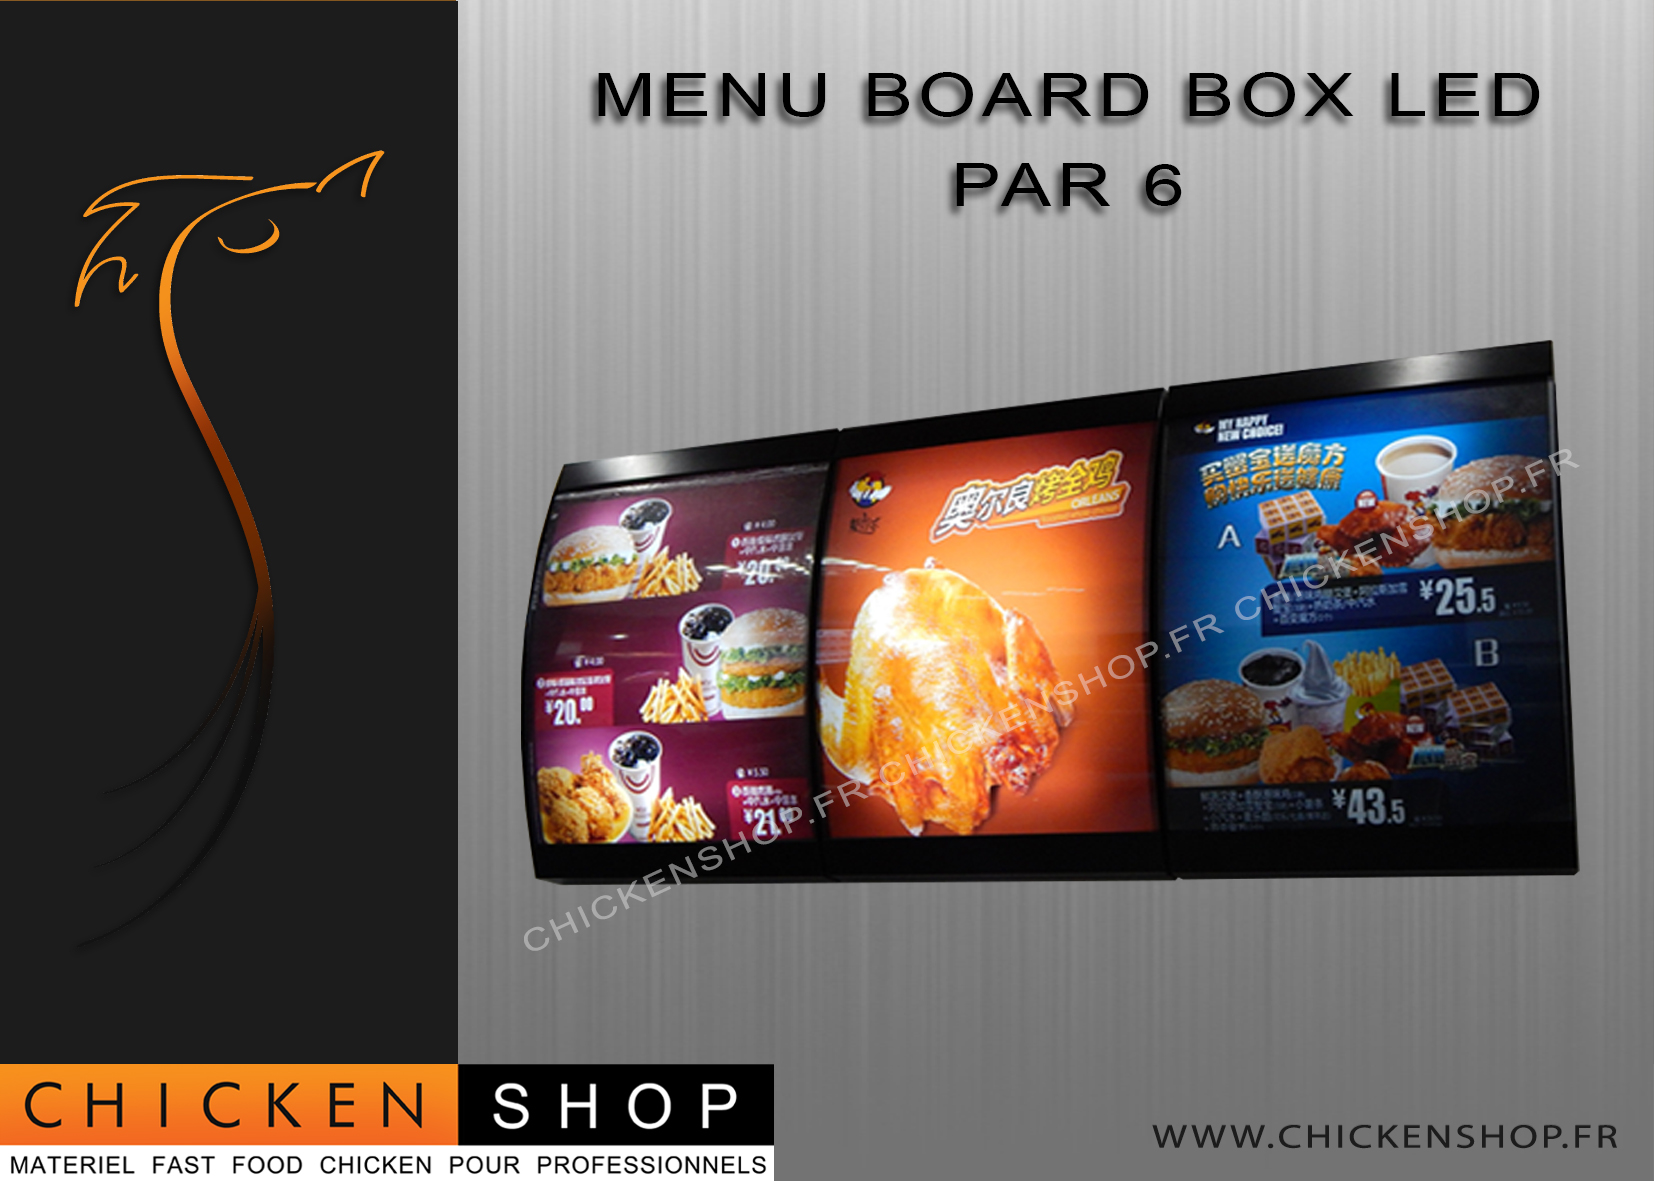 Menu Board BOX LED par 6